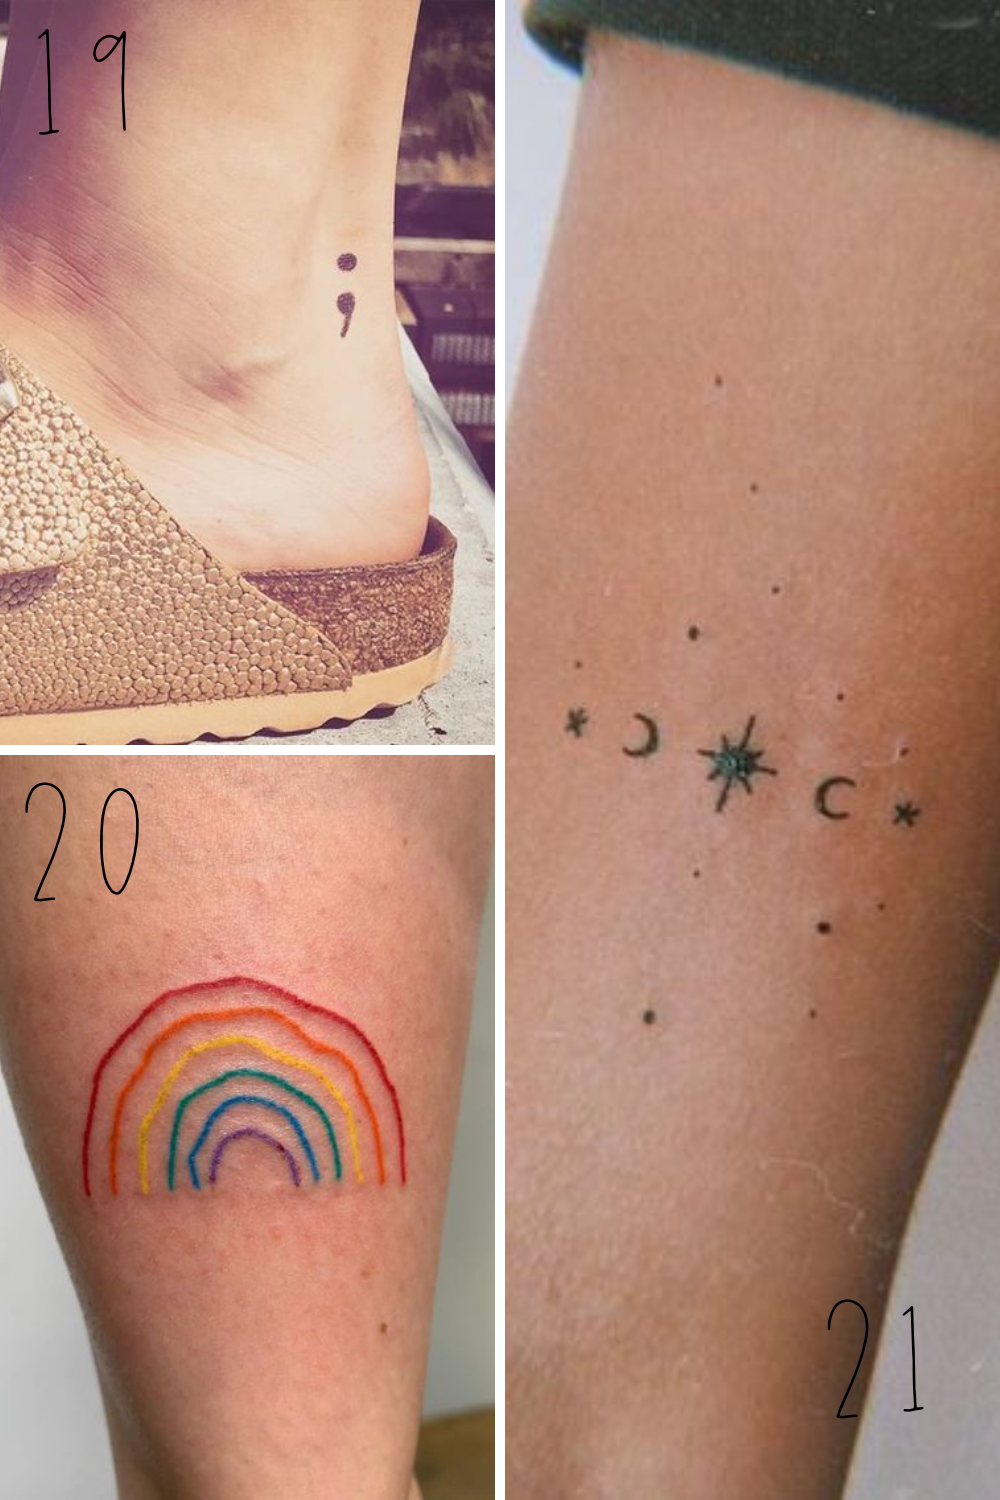 Simple tattoo Ideas For 2021